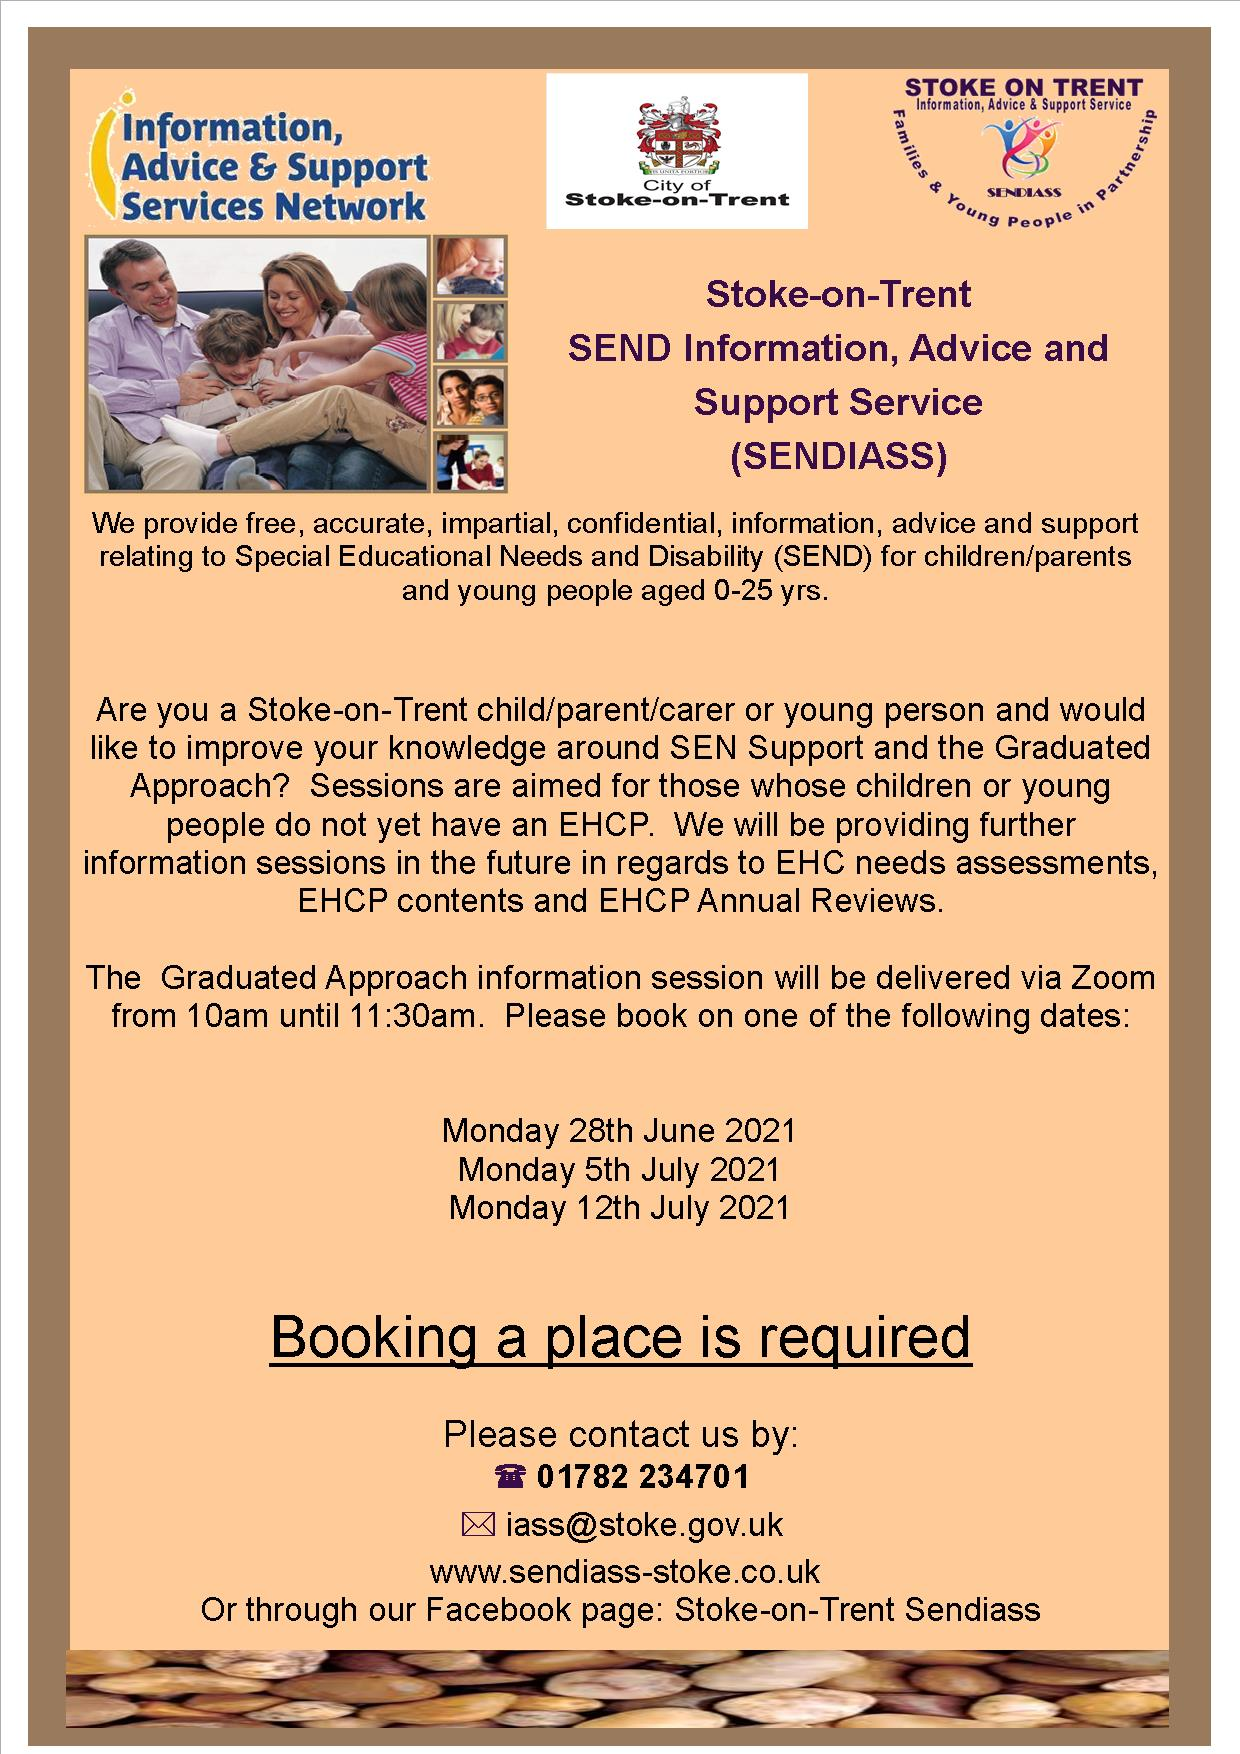 Special Educational Needs and Disabilities (SEND) Advice Sessions